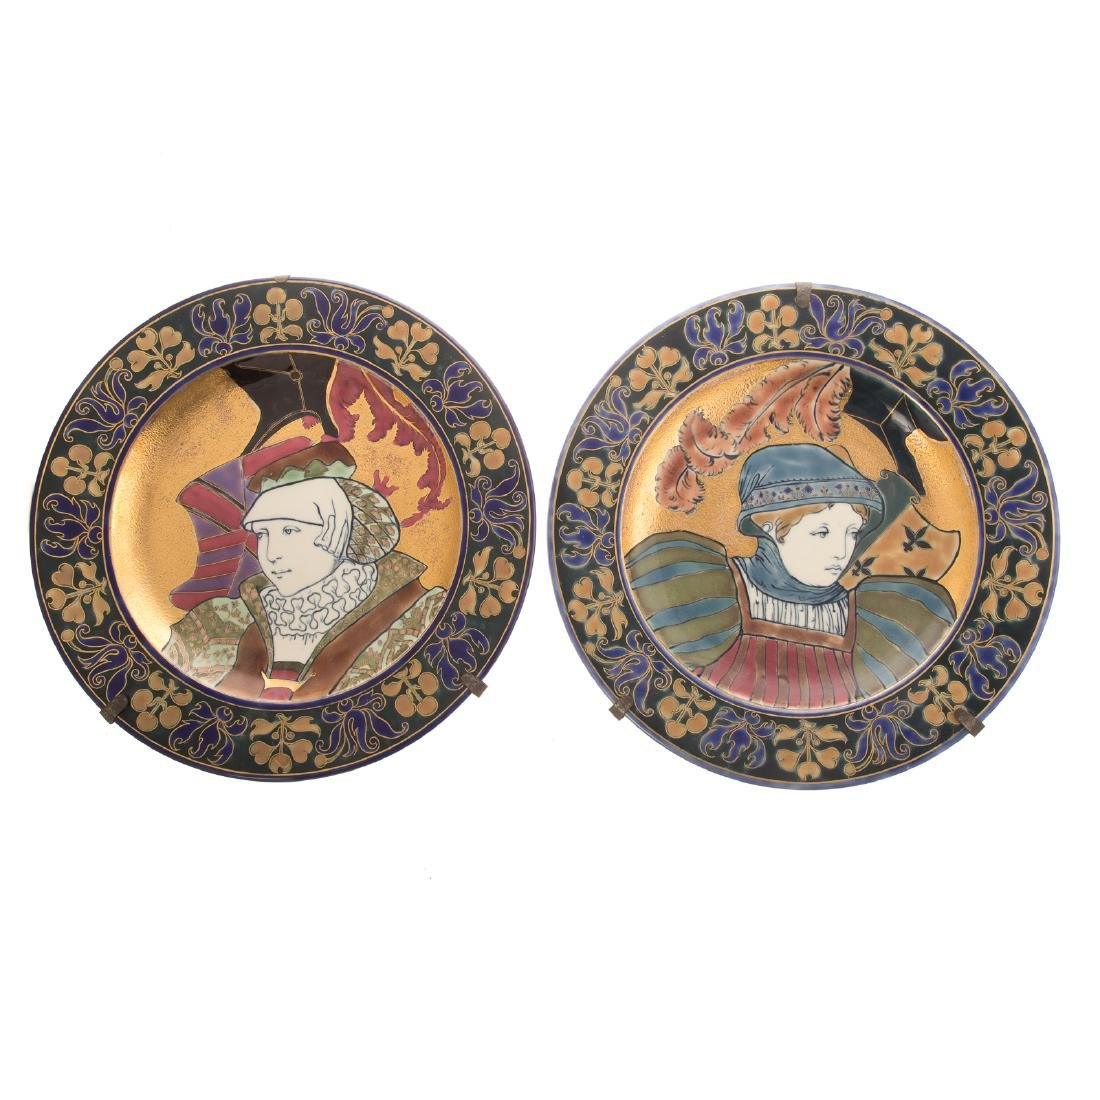 Pair of Zsolnay Art Nouveau Chargers